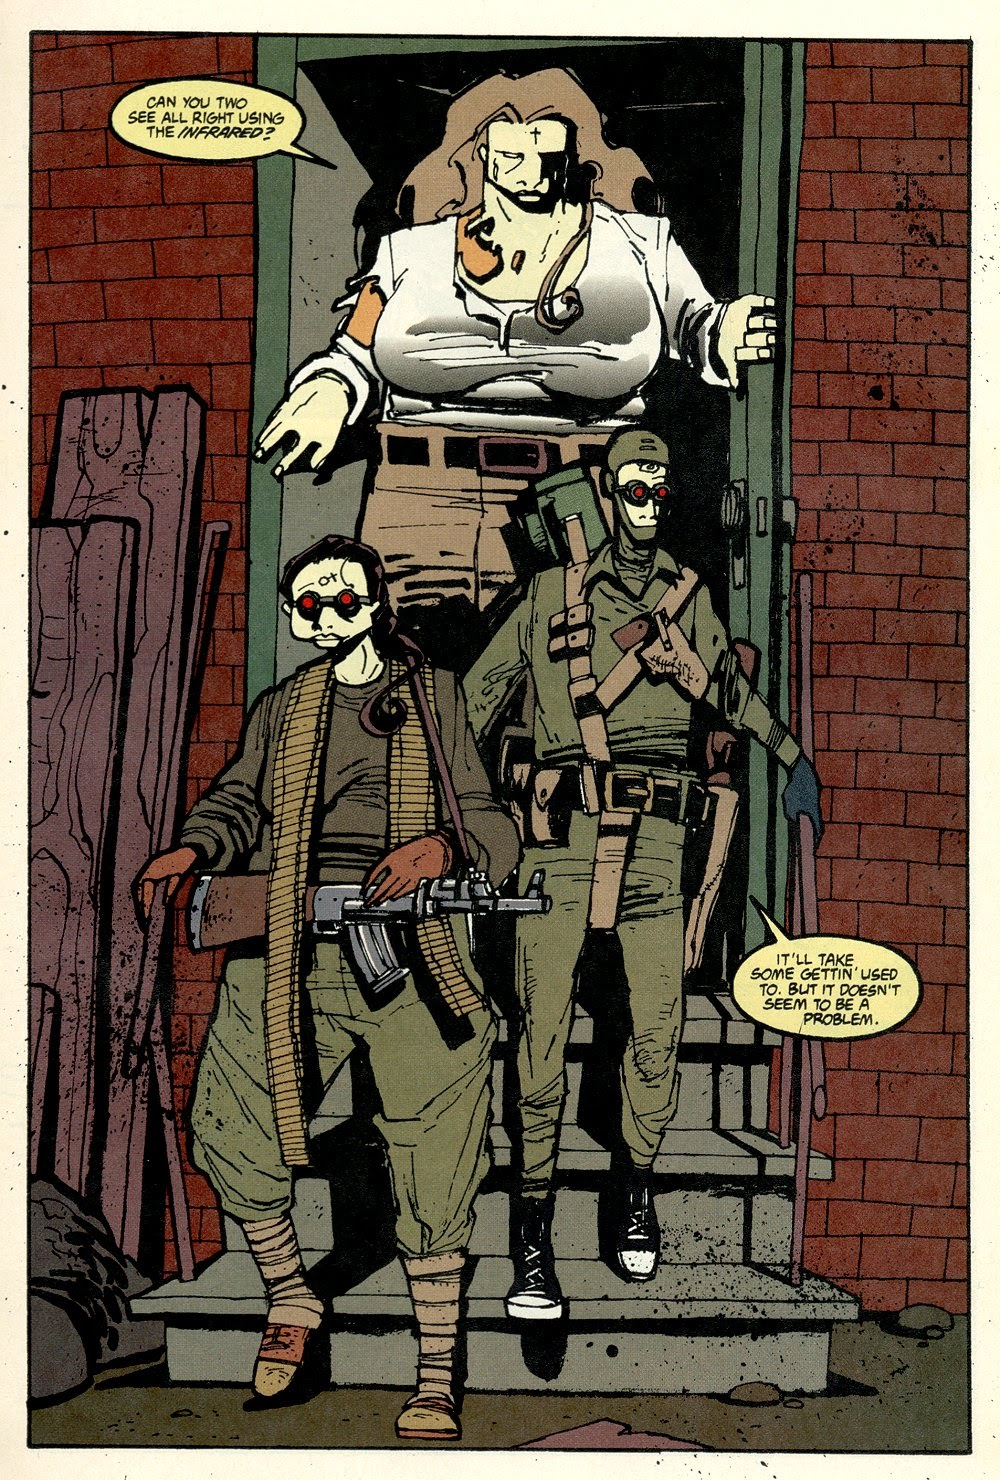 Read online Ted McKeever's Metropol comic -  Issue #11 - 13